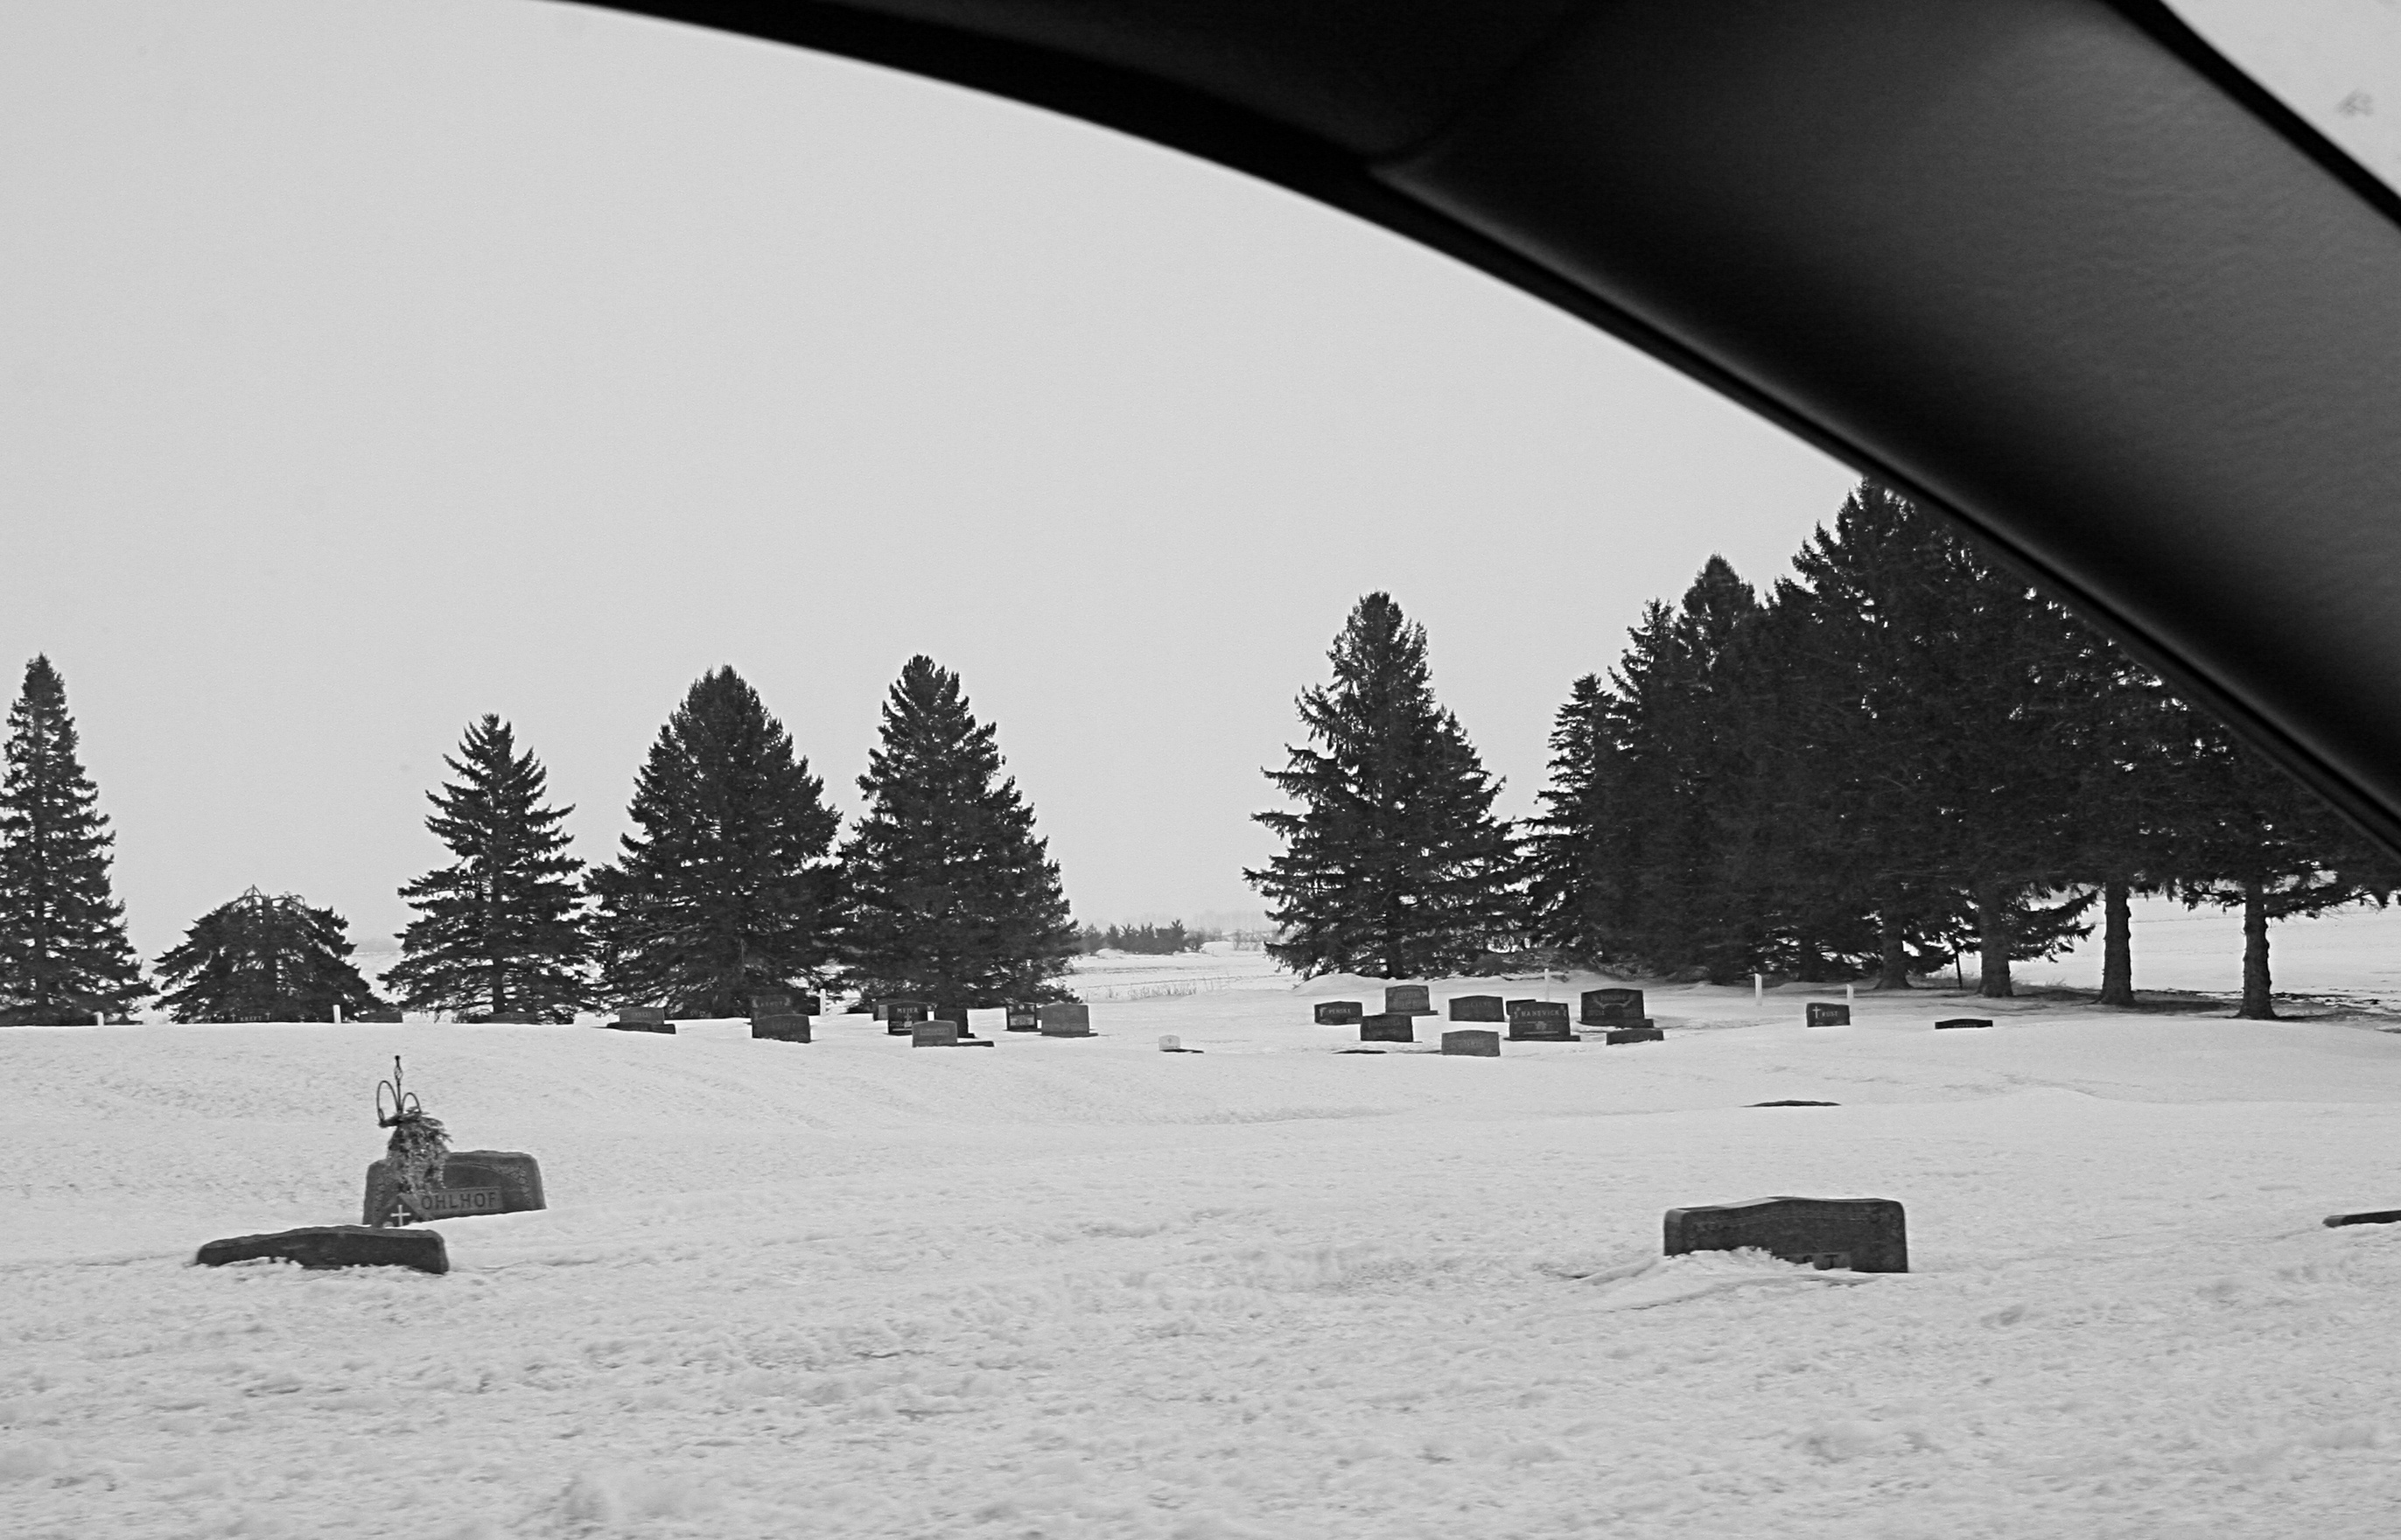 The closest I would get to my dad's grave was viewing the cemetery through t